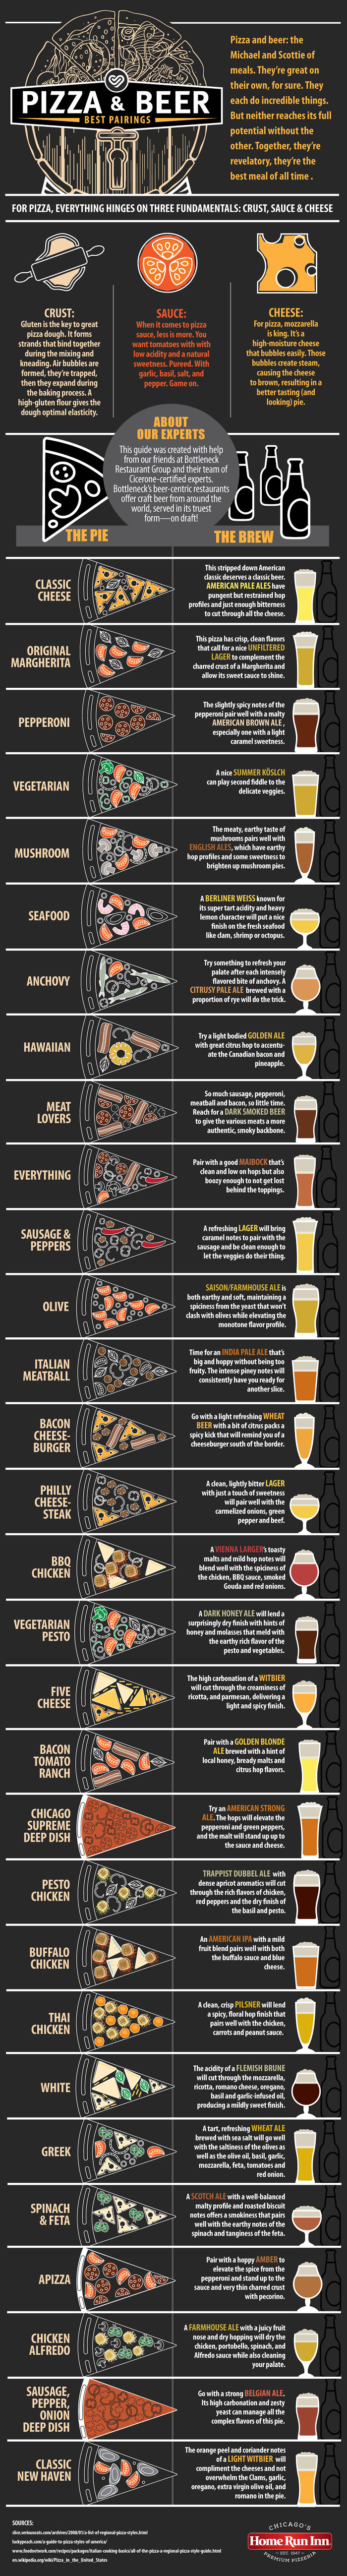 How To Pair Pizza And Beer Together